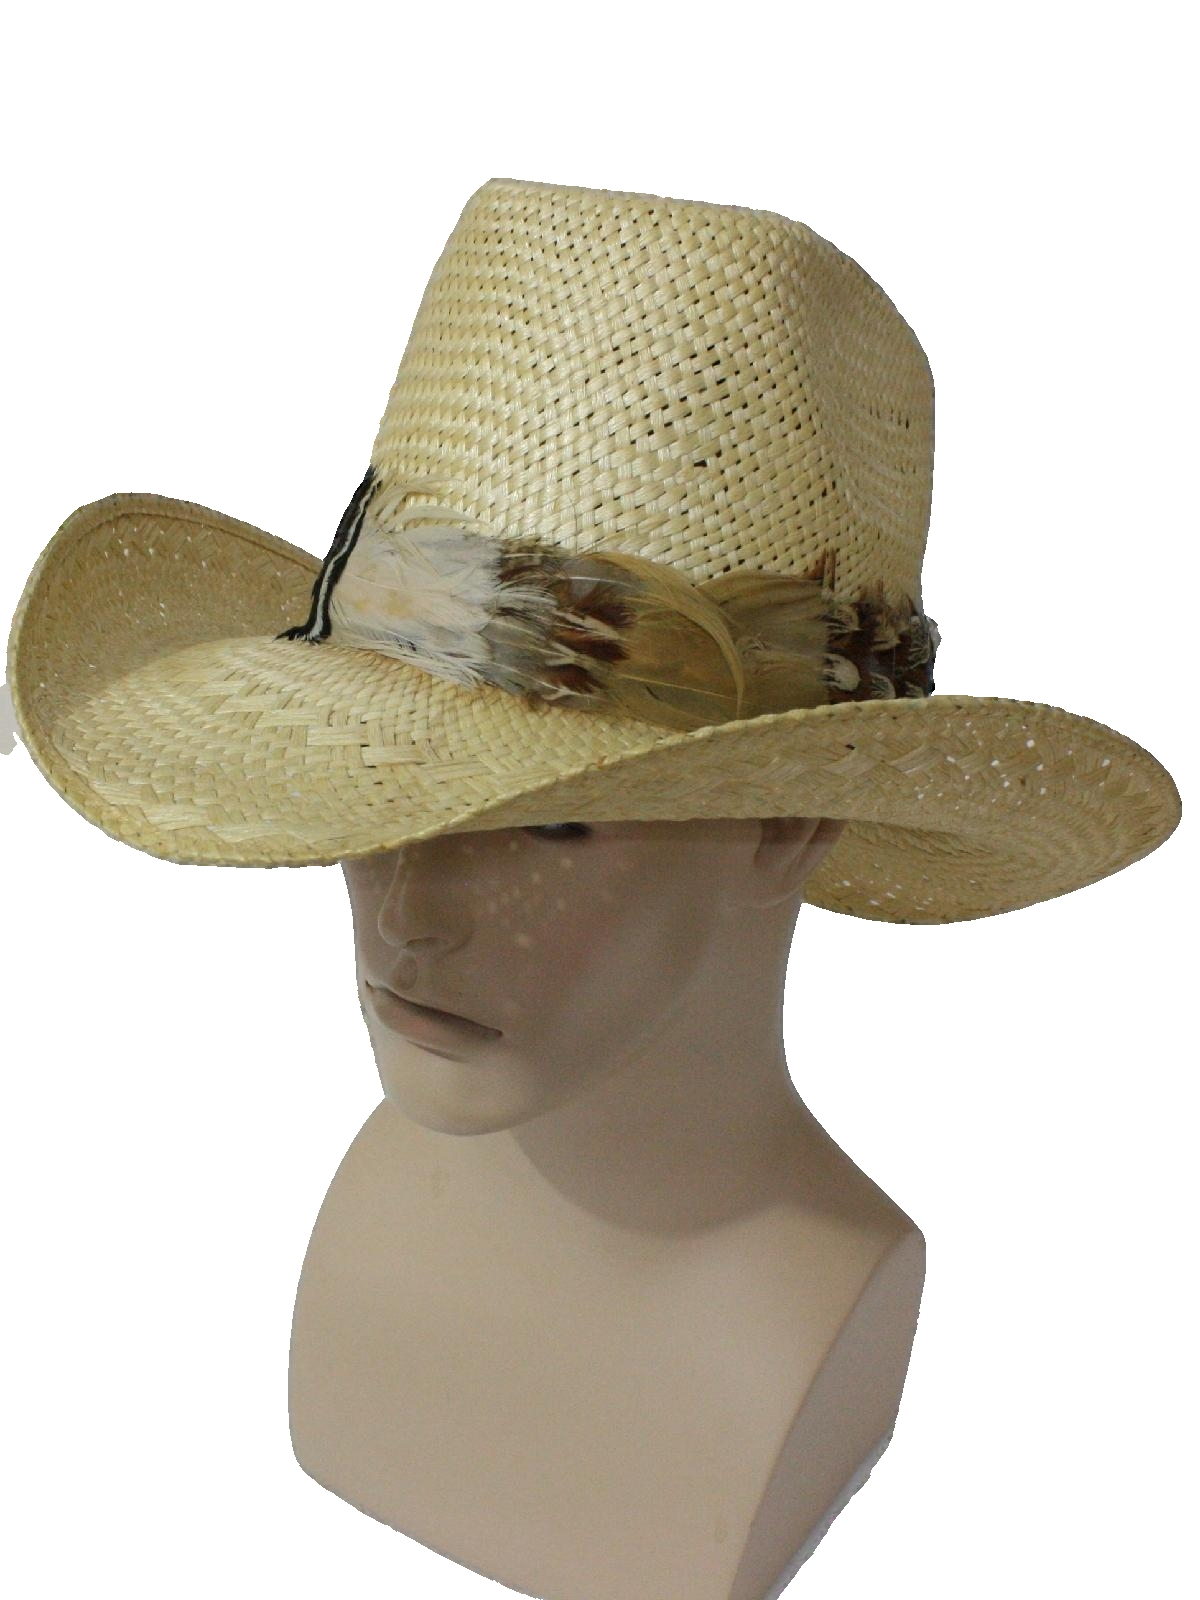 Retro 1970s Hat  Late 70s or Early 80s -Resistol Stagecoach- Mens ... dd9c60935c59